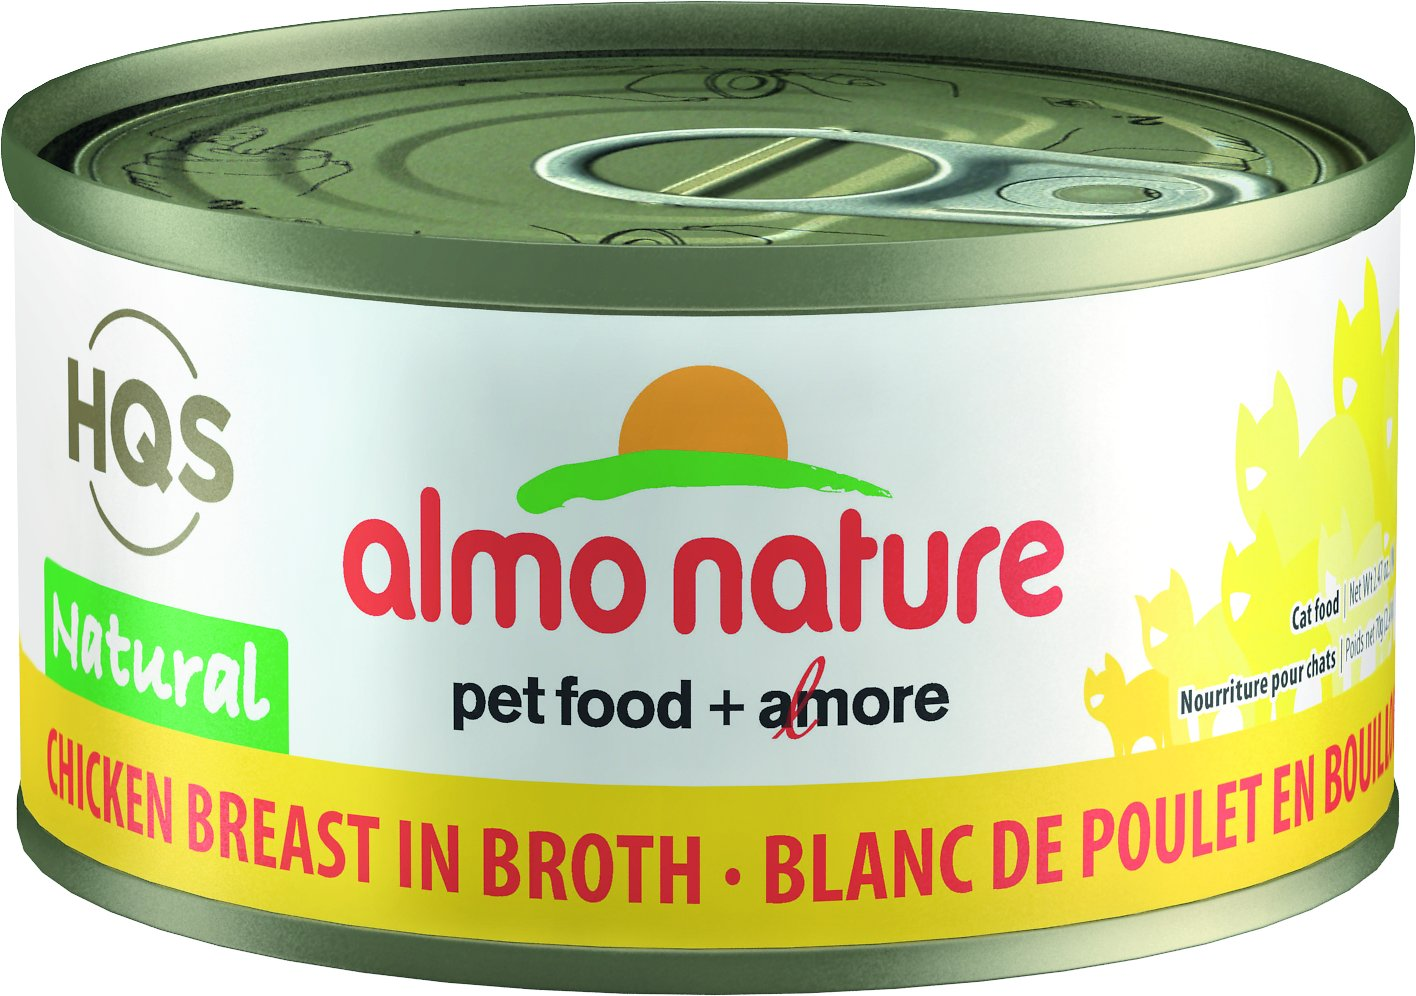 Almo Nature HQS Natural Chicken Breast in Broth Grain-Free Canned Cat Food, 2.47-oz